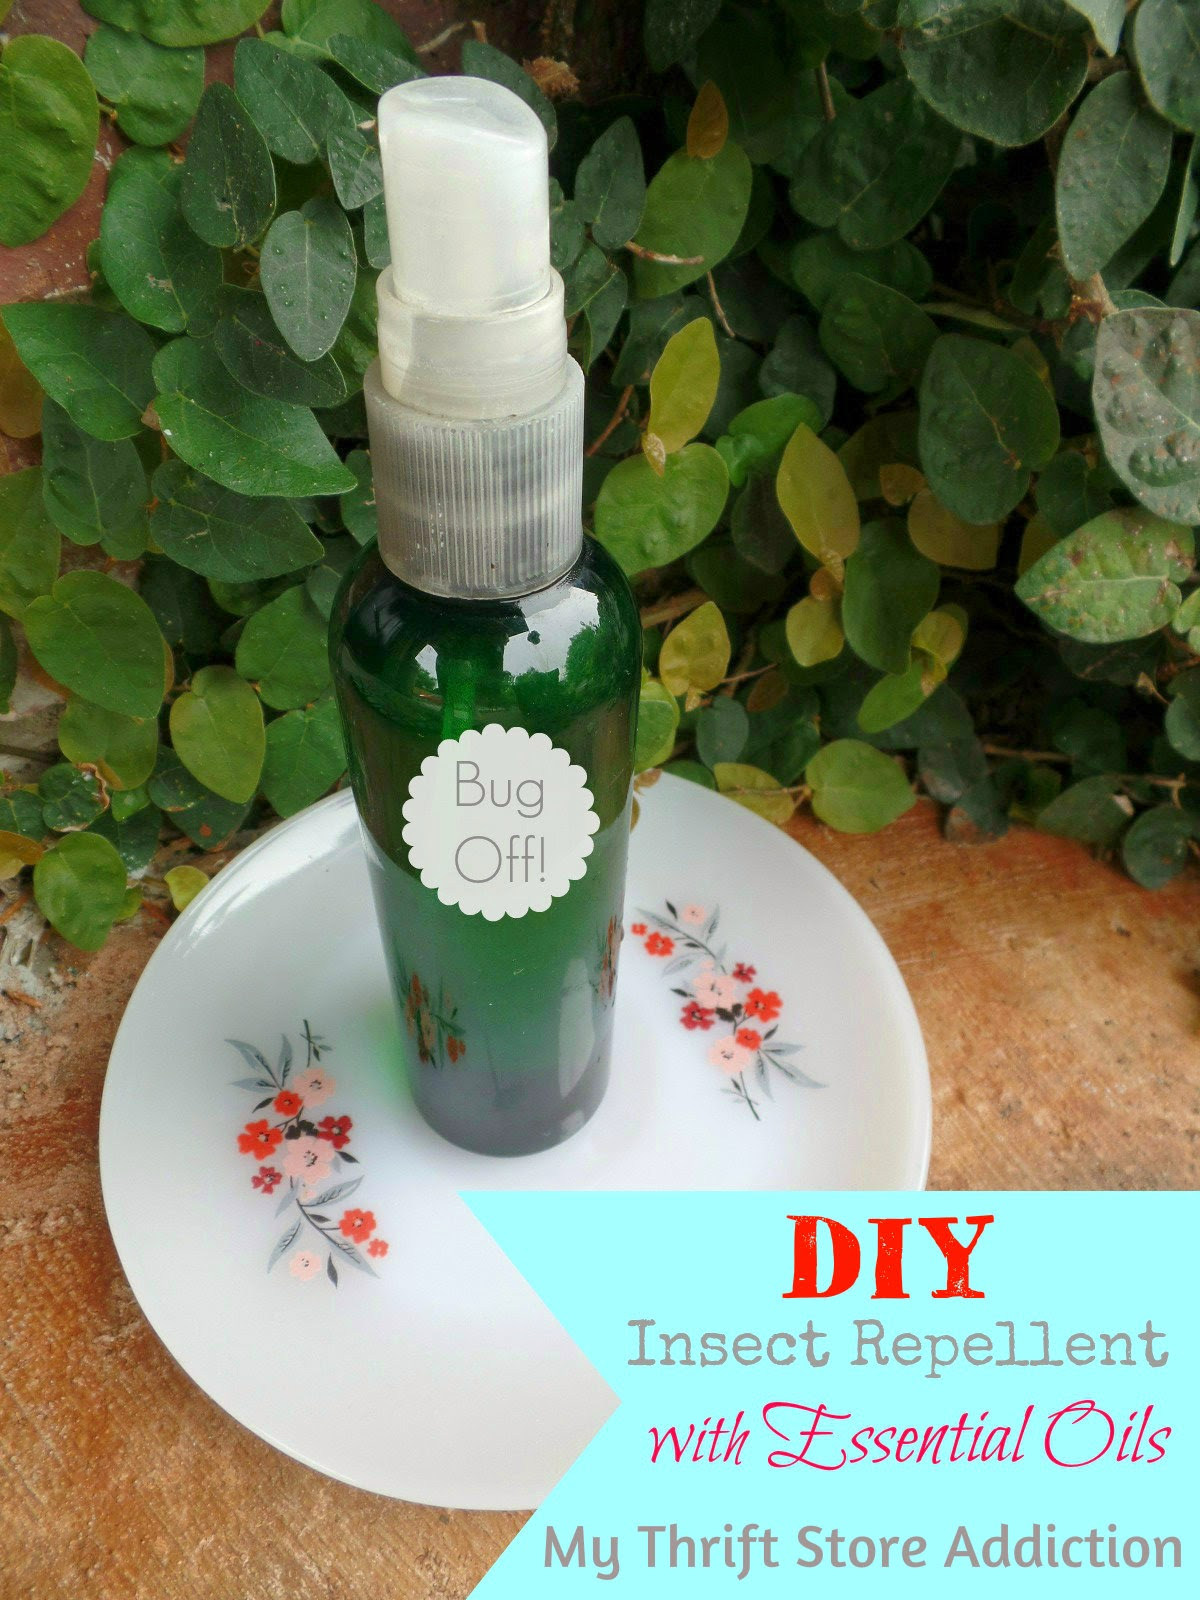 DIY Essential Oil Insect Repellent